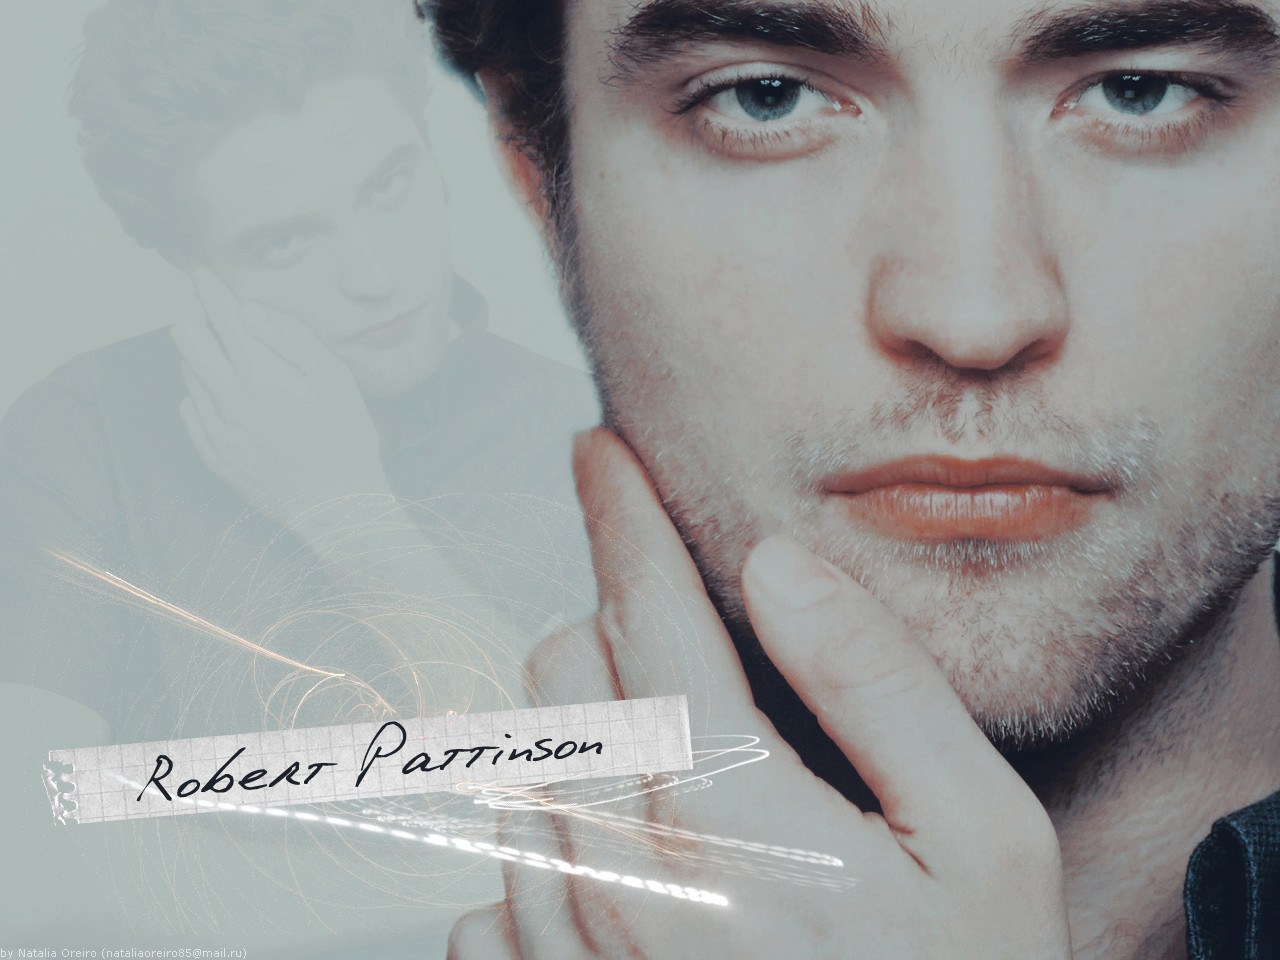 https://i0.wp.com/images2.fanpop.com/images/photos/5100000/Rob-Pattinson-twilight-series-5155614-1280-960.jpg